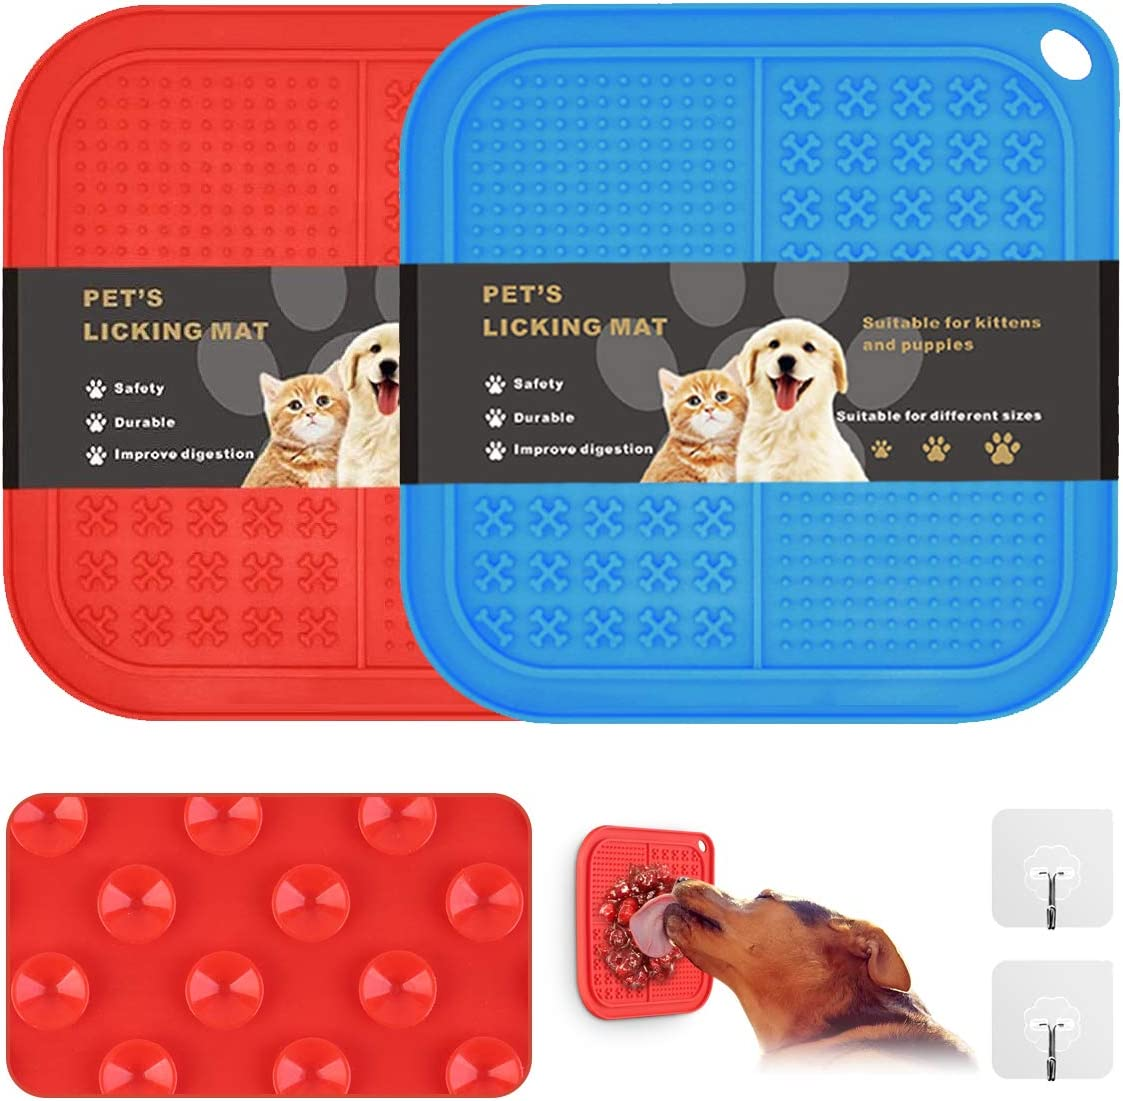 OTIME 2 Pack Dog Lick Mat with Suction Cups Dog Slow Feeder Dog Licking Mat Pet Mat Anxiety Relief Dog Cat Lick Training Licking Mat for Food, Yogurt, Peanut Butter(Blue and Red)